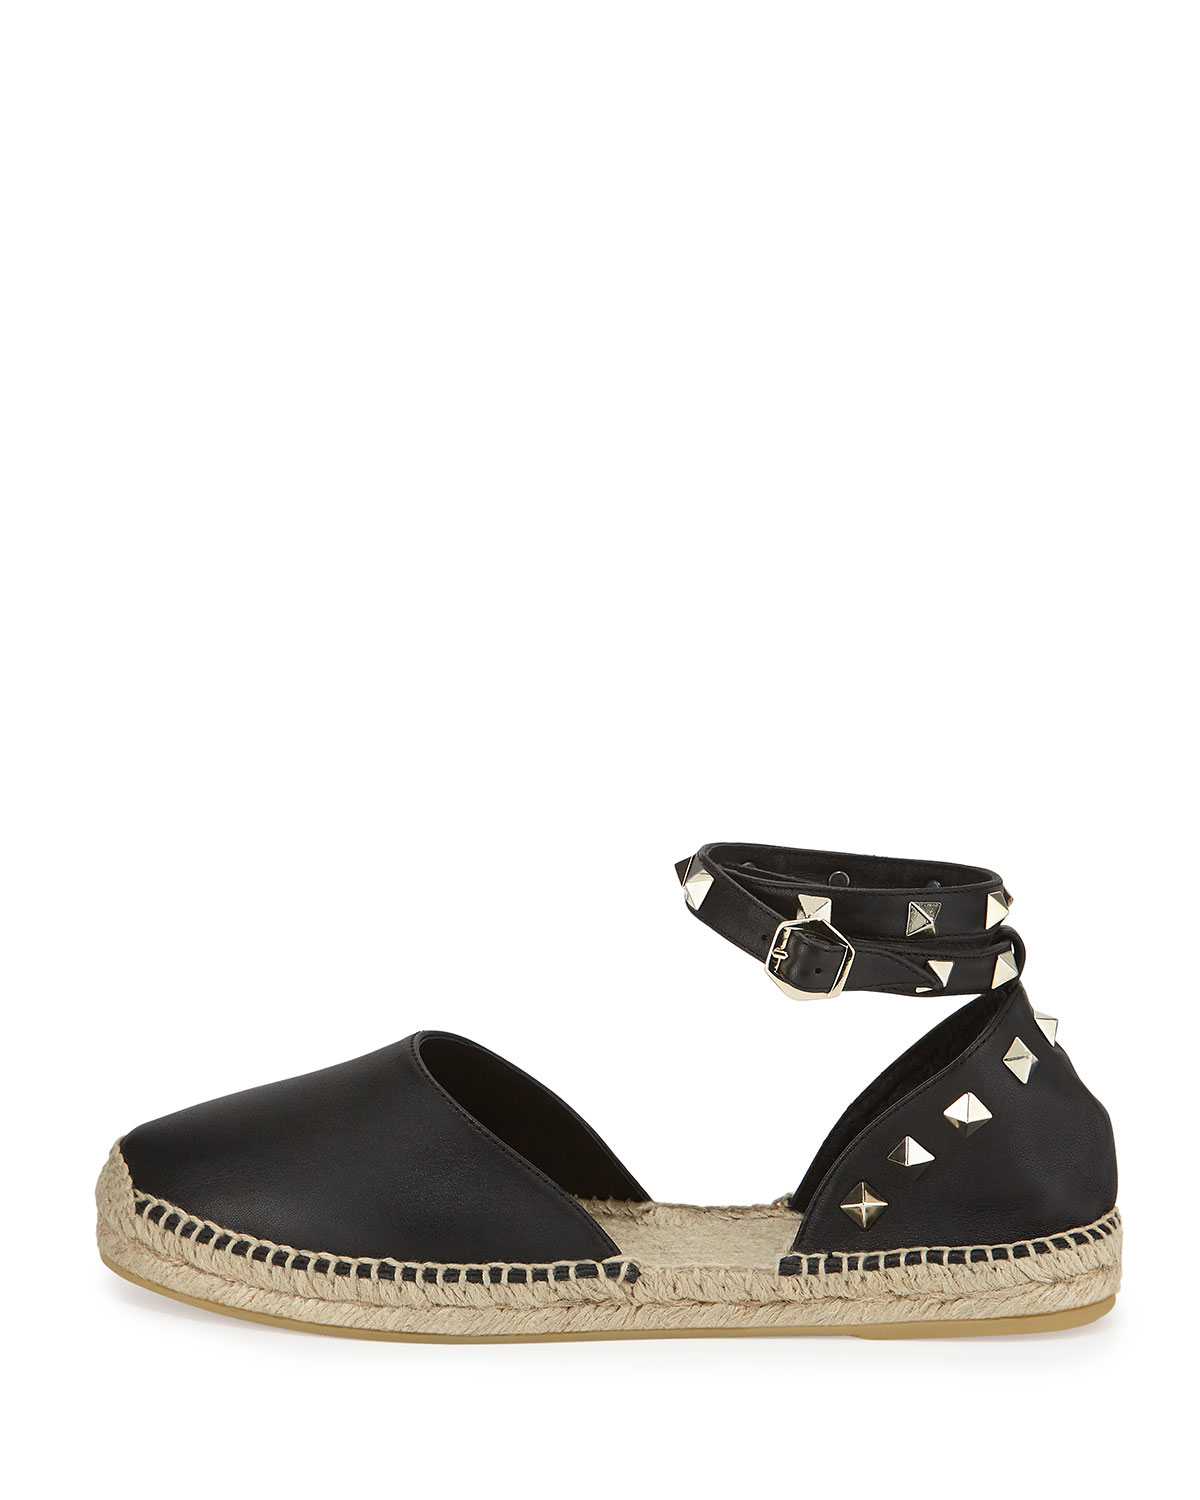 ash flat black singles Get free shipping on ash shoes at neiman marcus  leather trim1 textured flat heel with platformreinforced round toelace-up vamplogo tab at backstaycushioned .